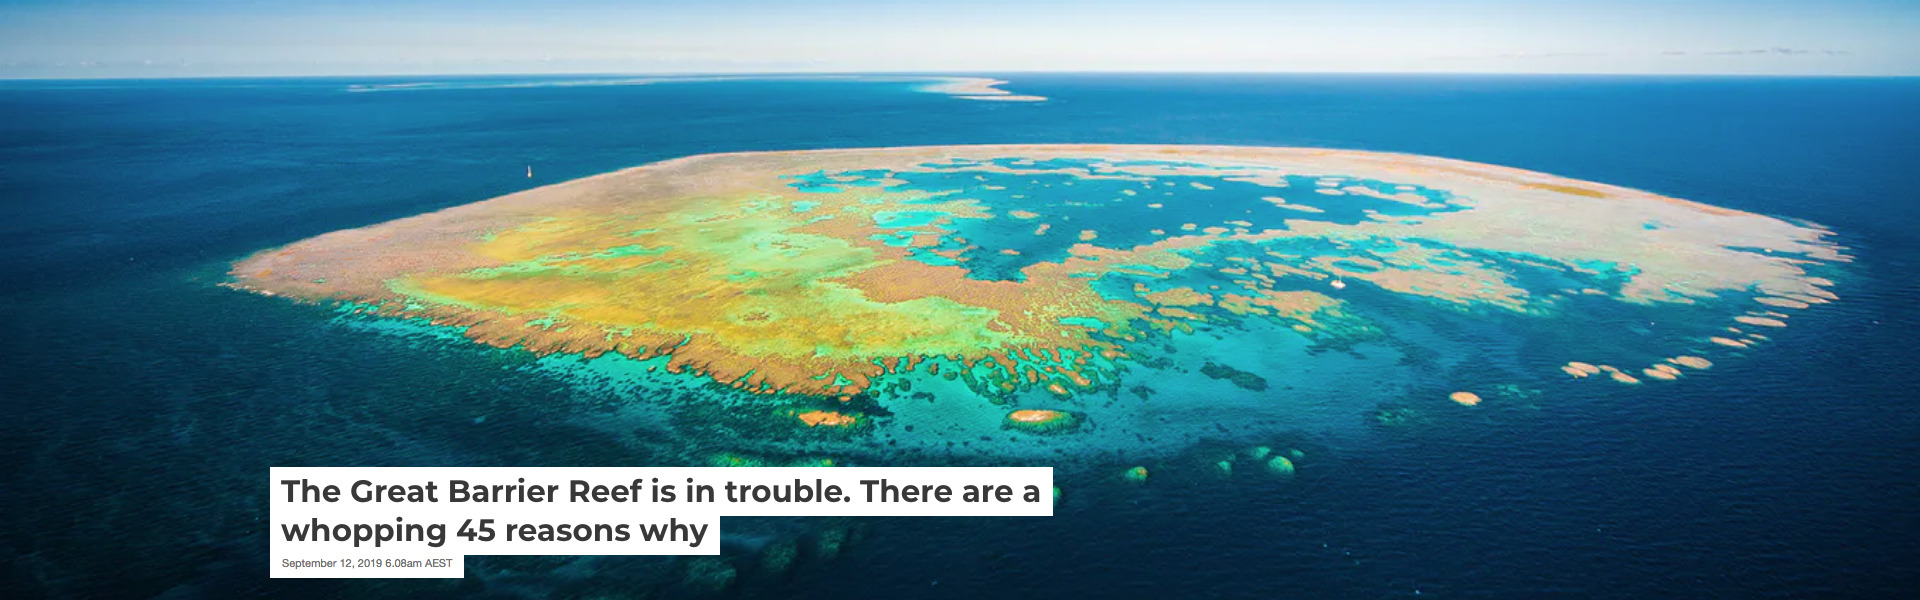 Screenshot_2019-09-12 The Great Barrier Reef is in trouble There are a whopping 45 reasons why.jpg